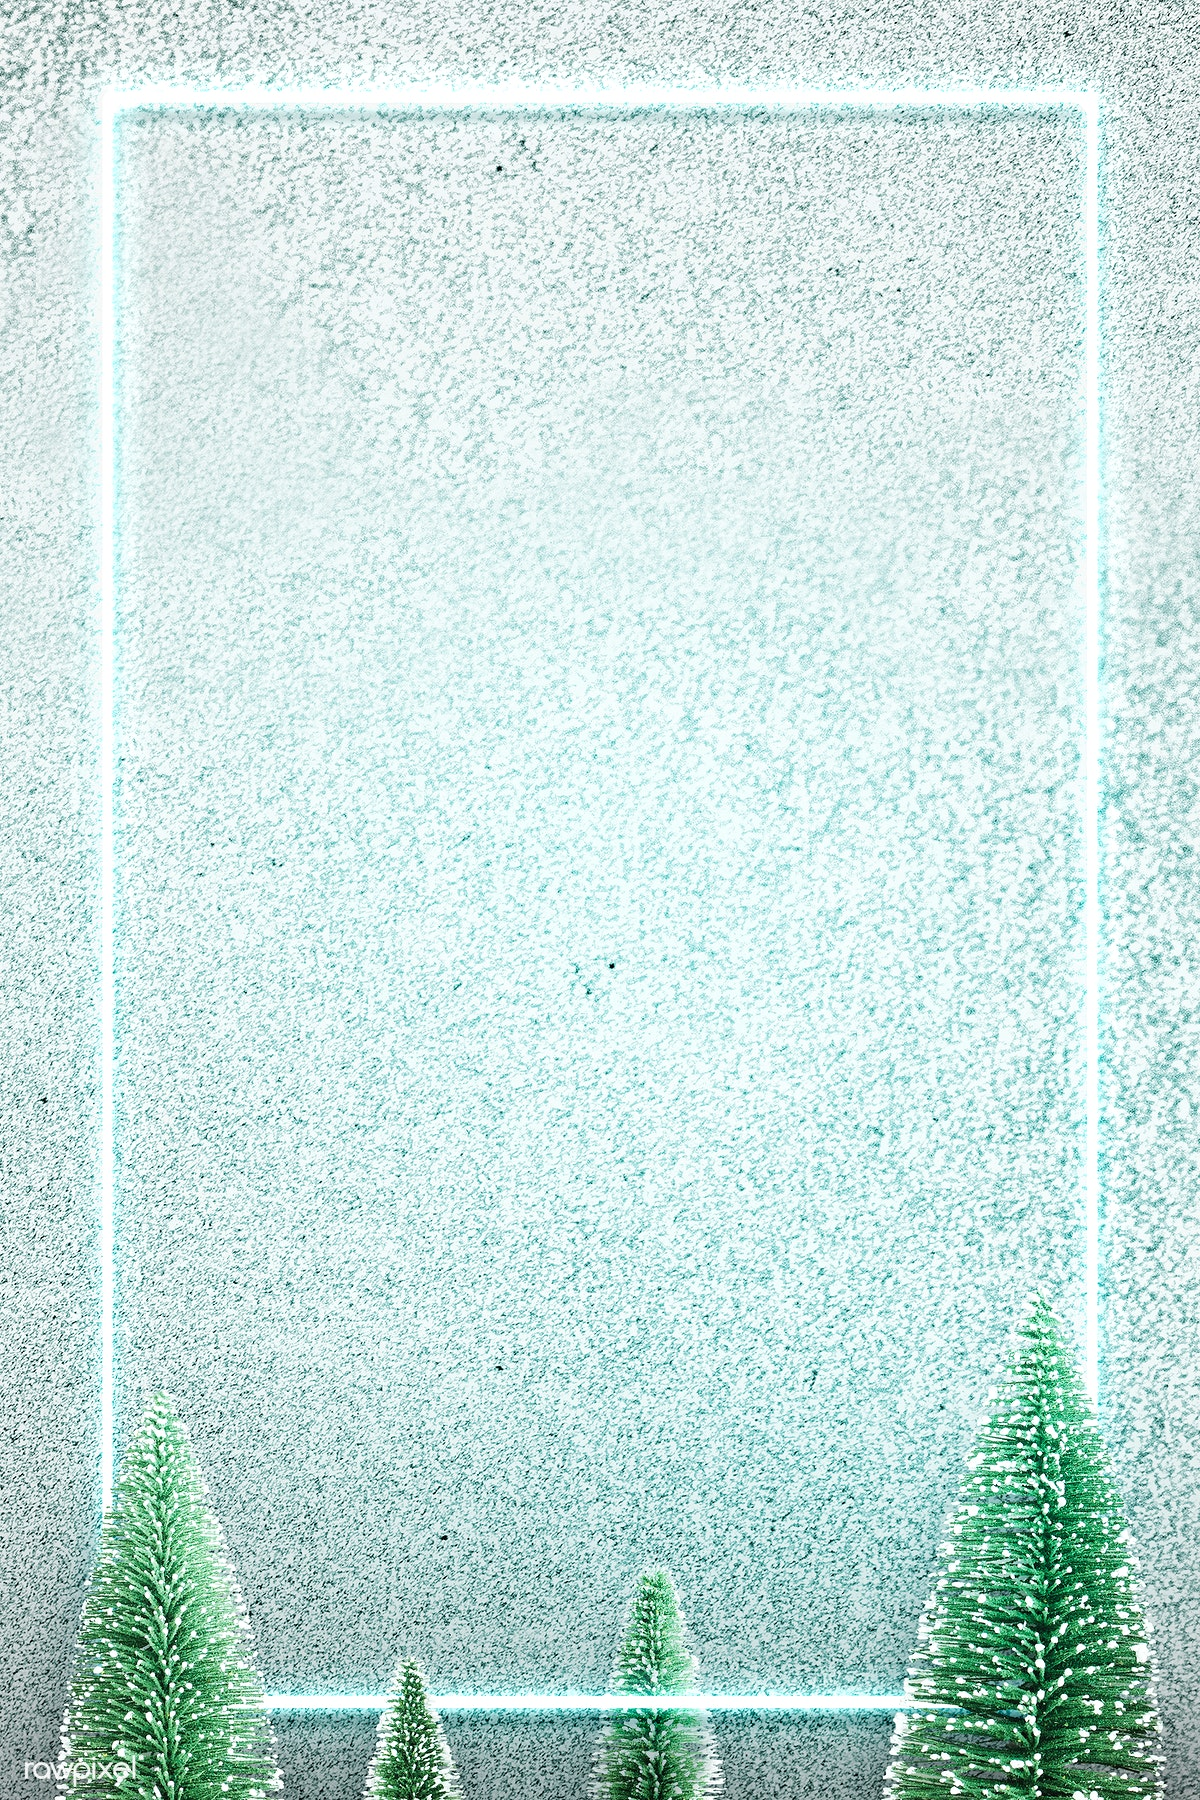 Christmas Background Pic.Download Premium Image Of Green Neon Frame On Snowy Christmas Background